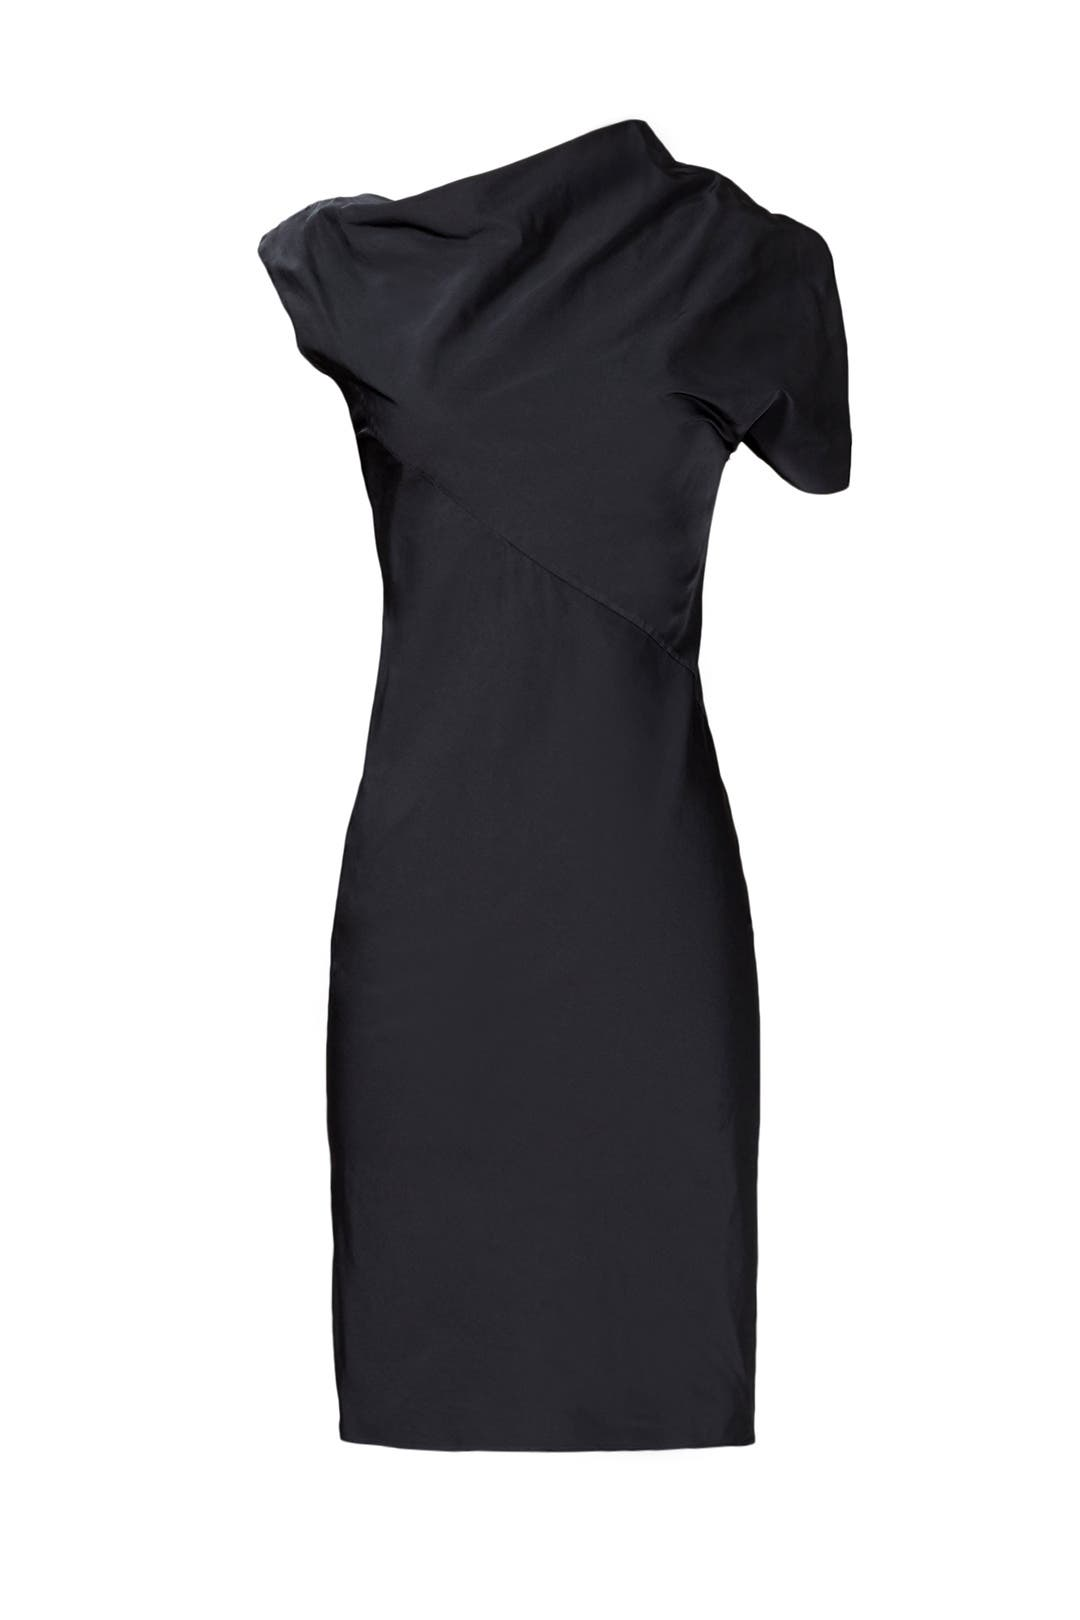 Tangled in Taffeta Sheath by Vera Wang